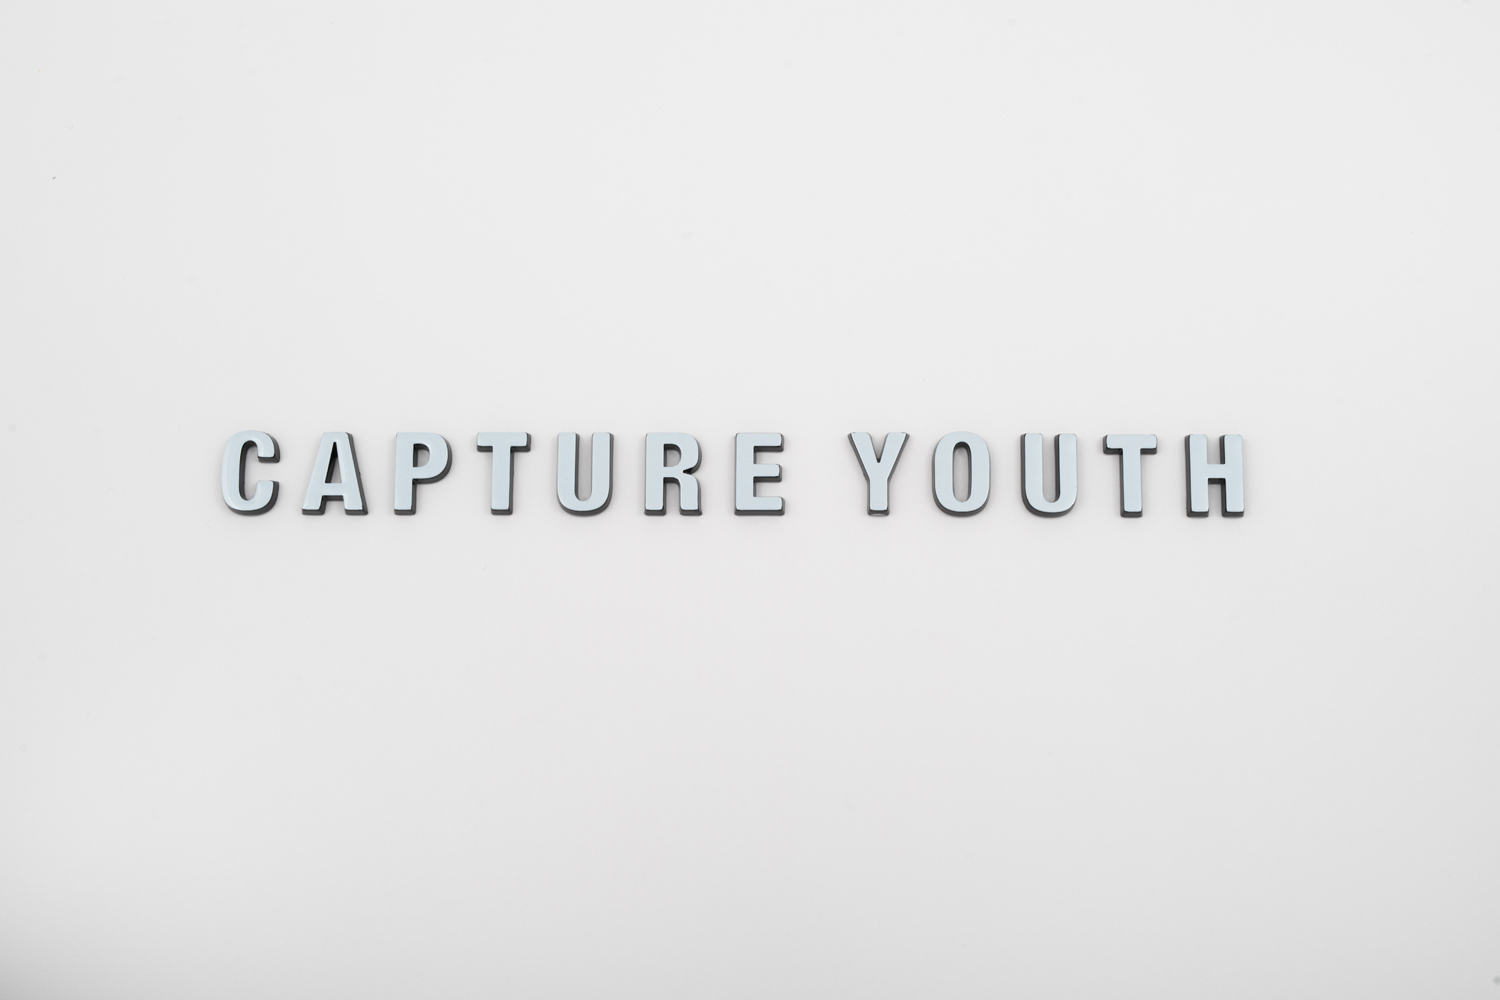 Black and white 3D logo capture youth